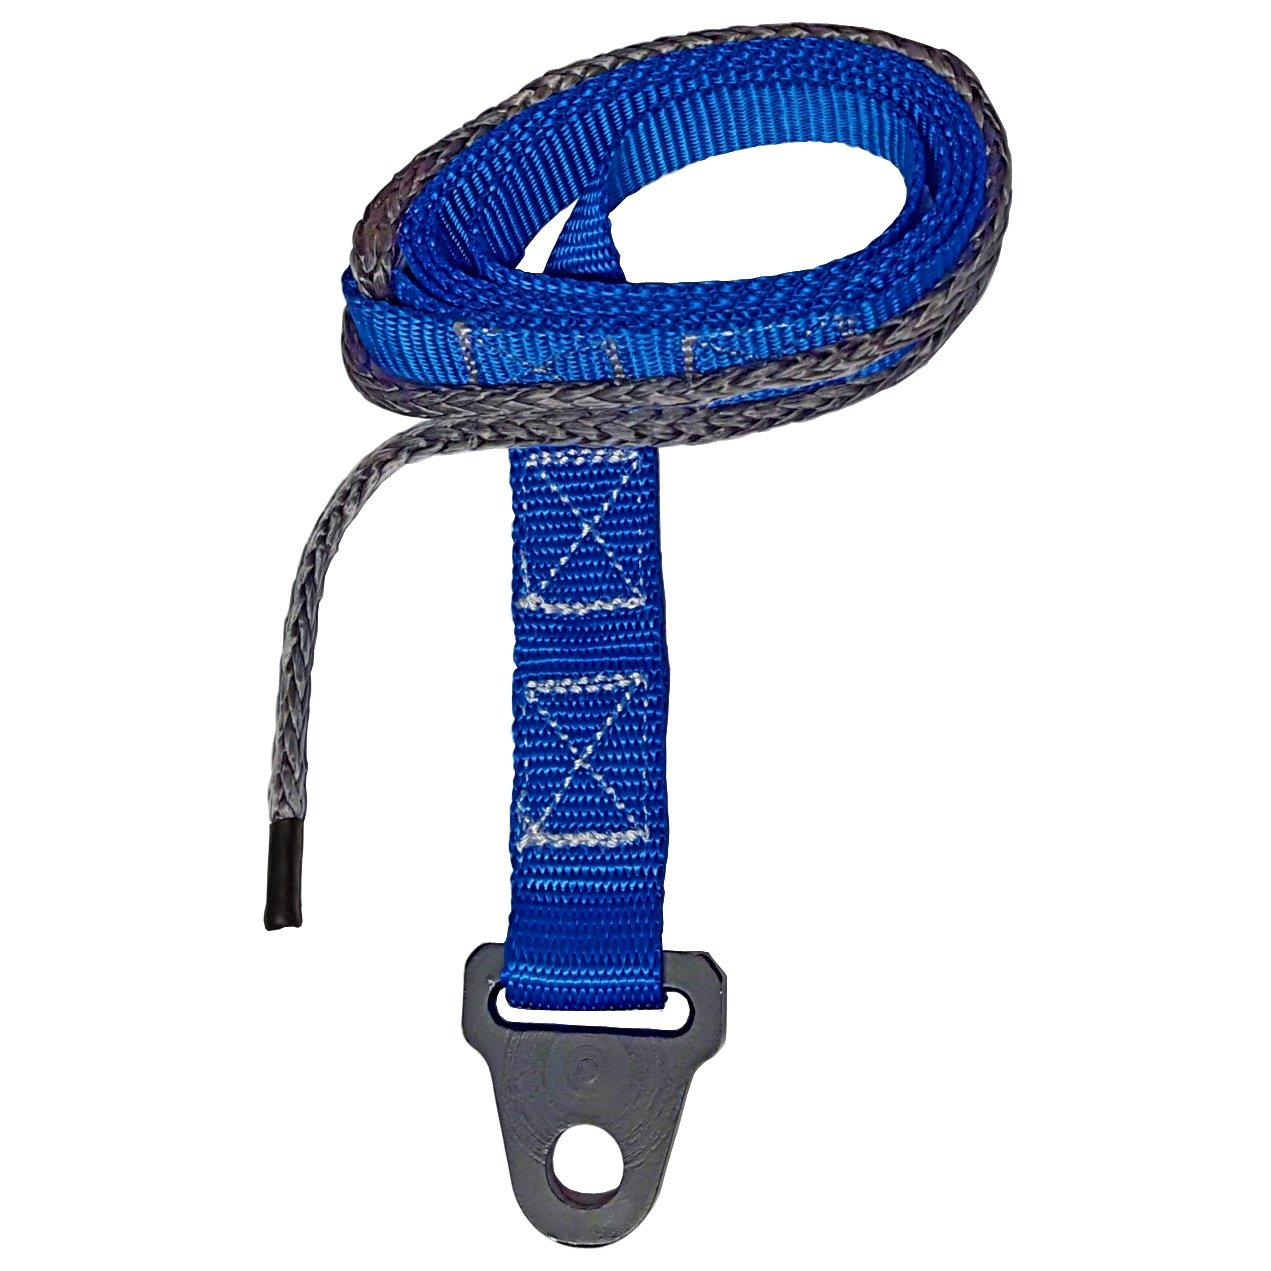 KFI Products 105100 Plow Strap